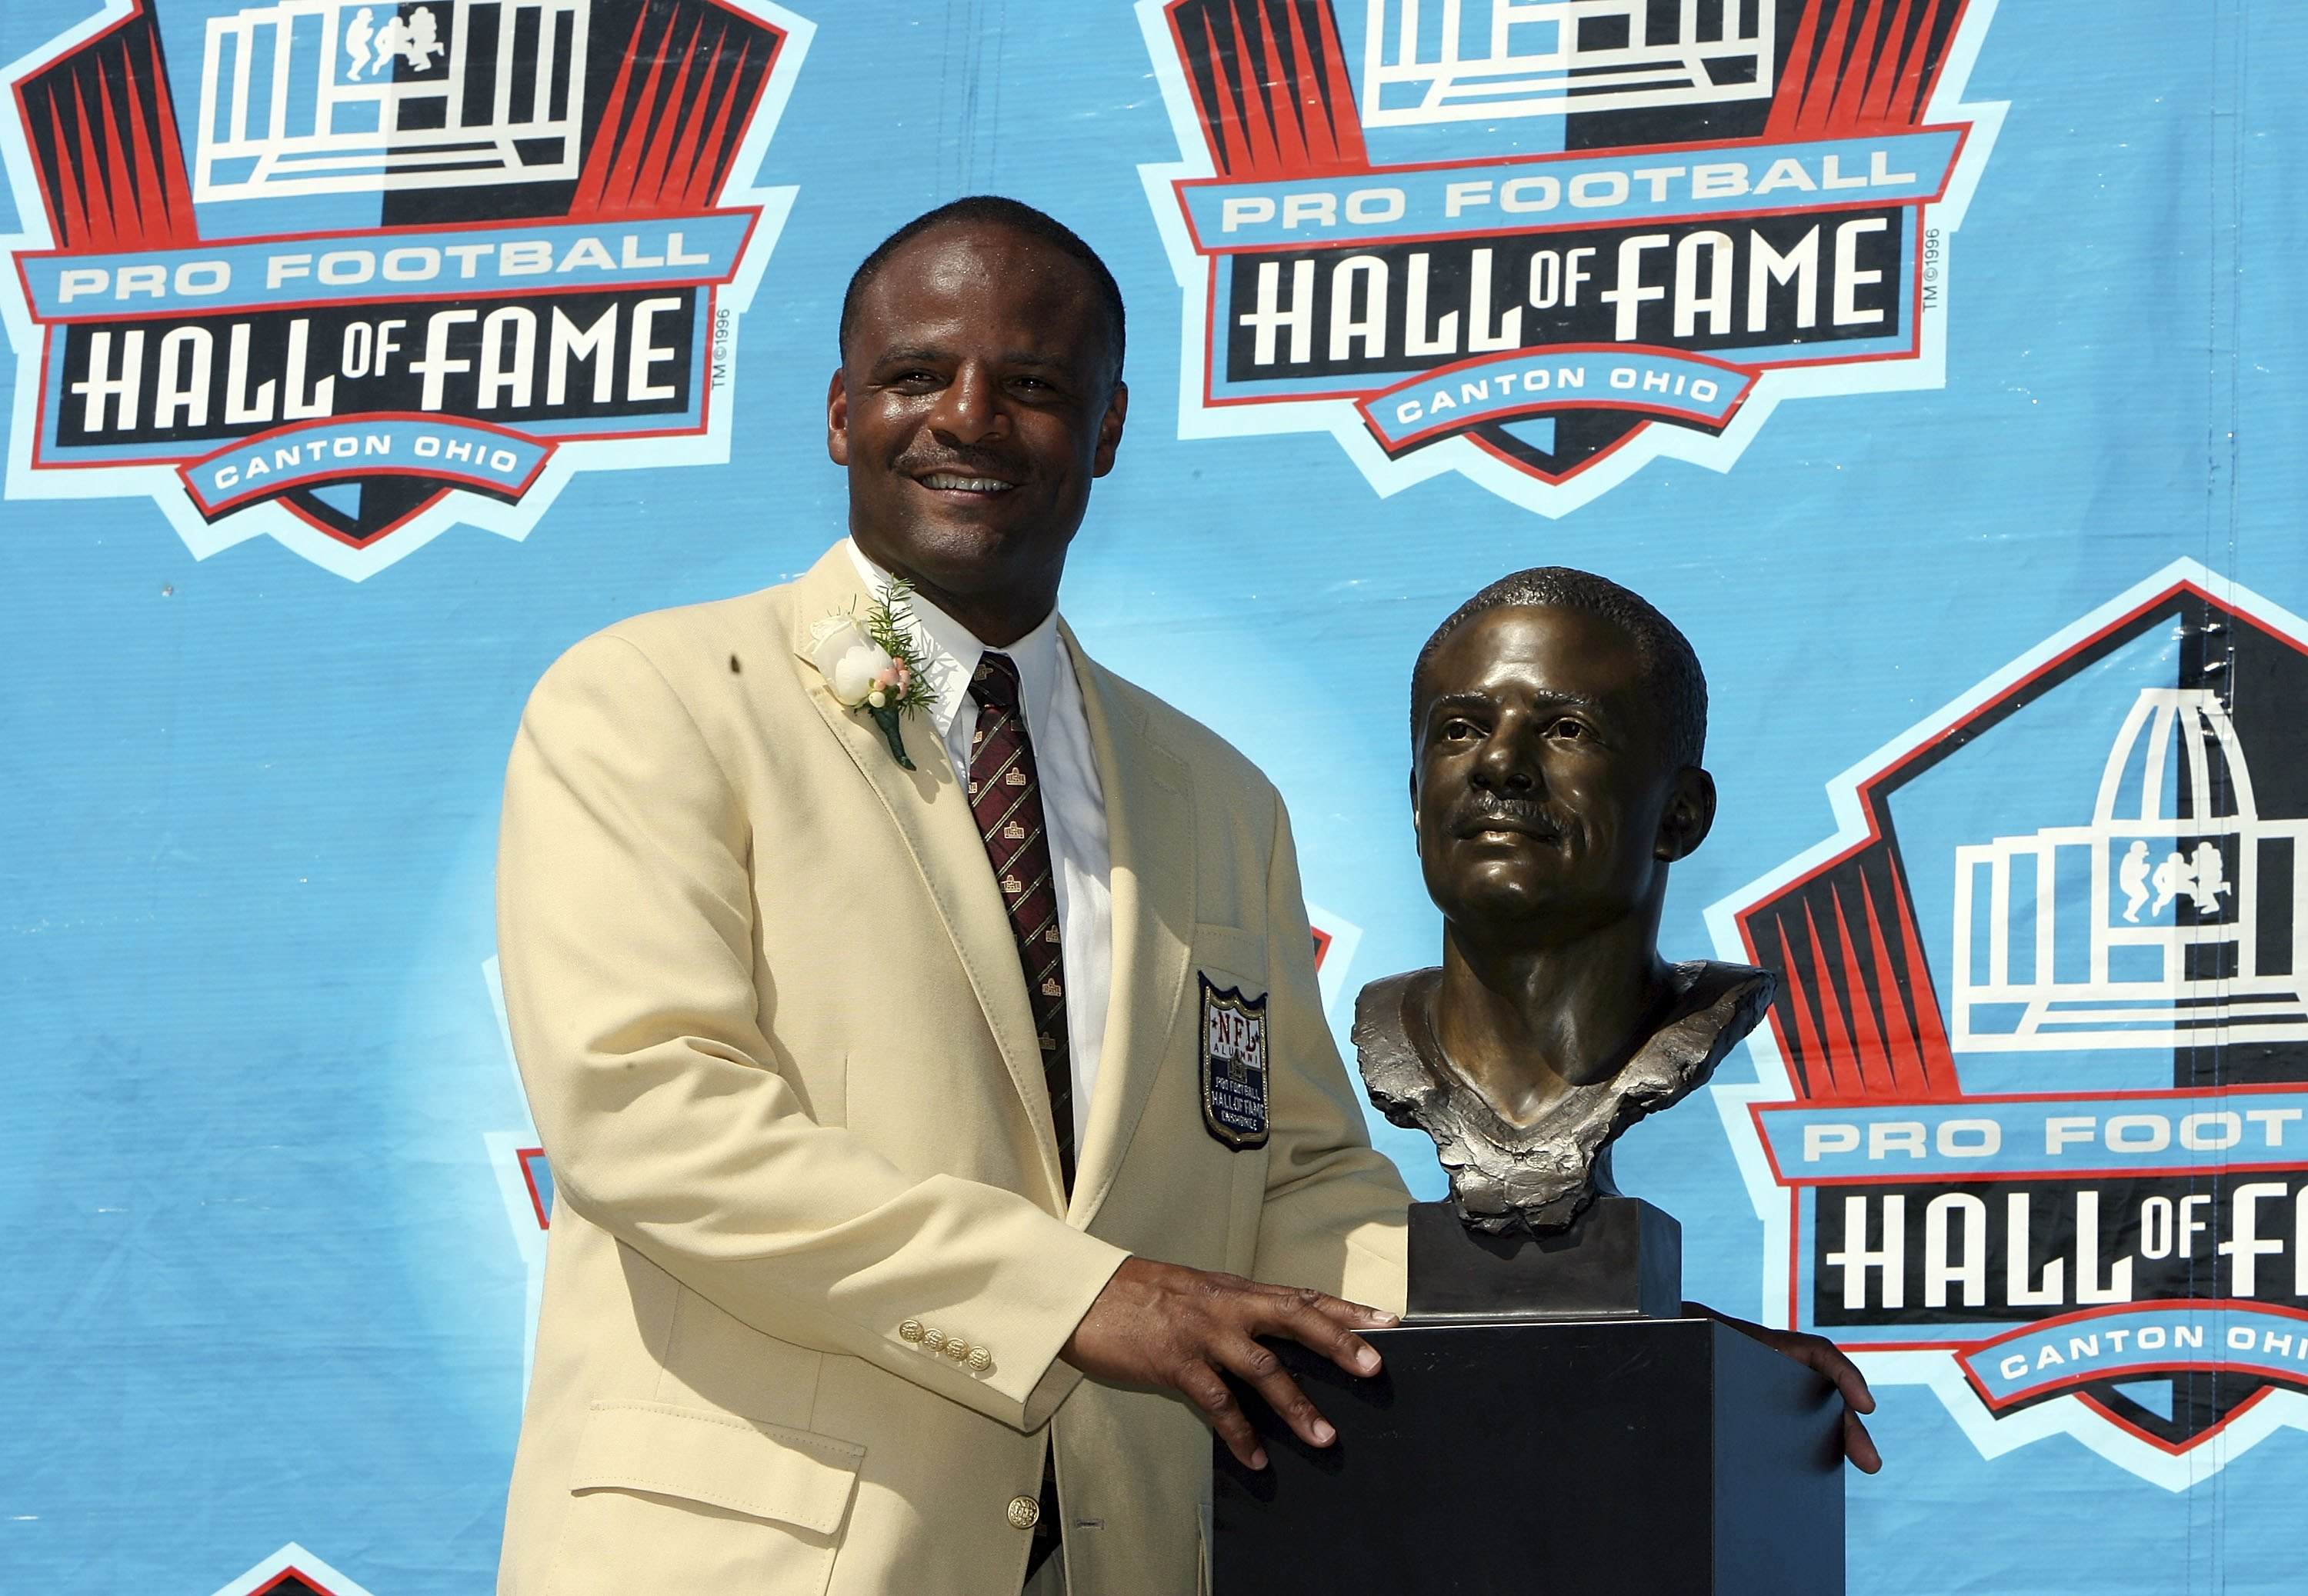 CANTON, OH - AUGUST 05:  Quarterback Warren Moon poses with his bust after his induction during the Class of 2006 Pro Football Hall of Fame Enshrinement Ceremony at Fawcett Stadium on August 5, 2006 in Canton, Ohio.  (Photo by Doug Benc/Getty Images)